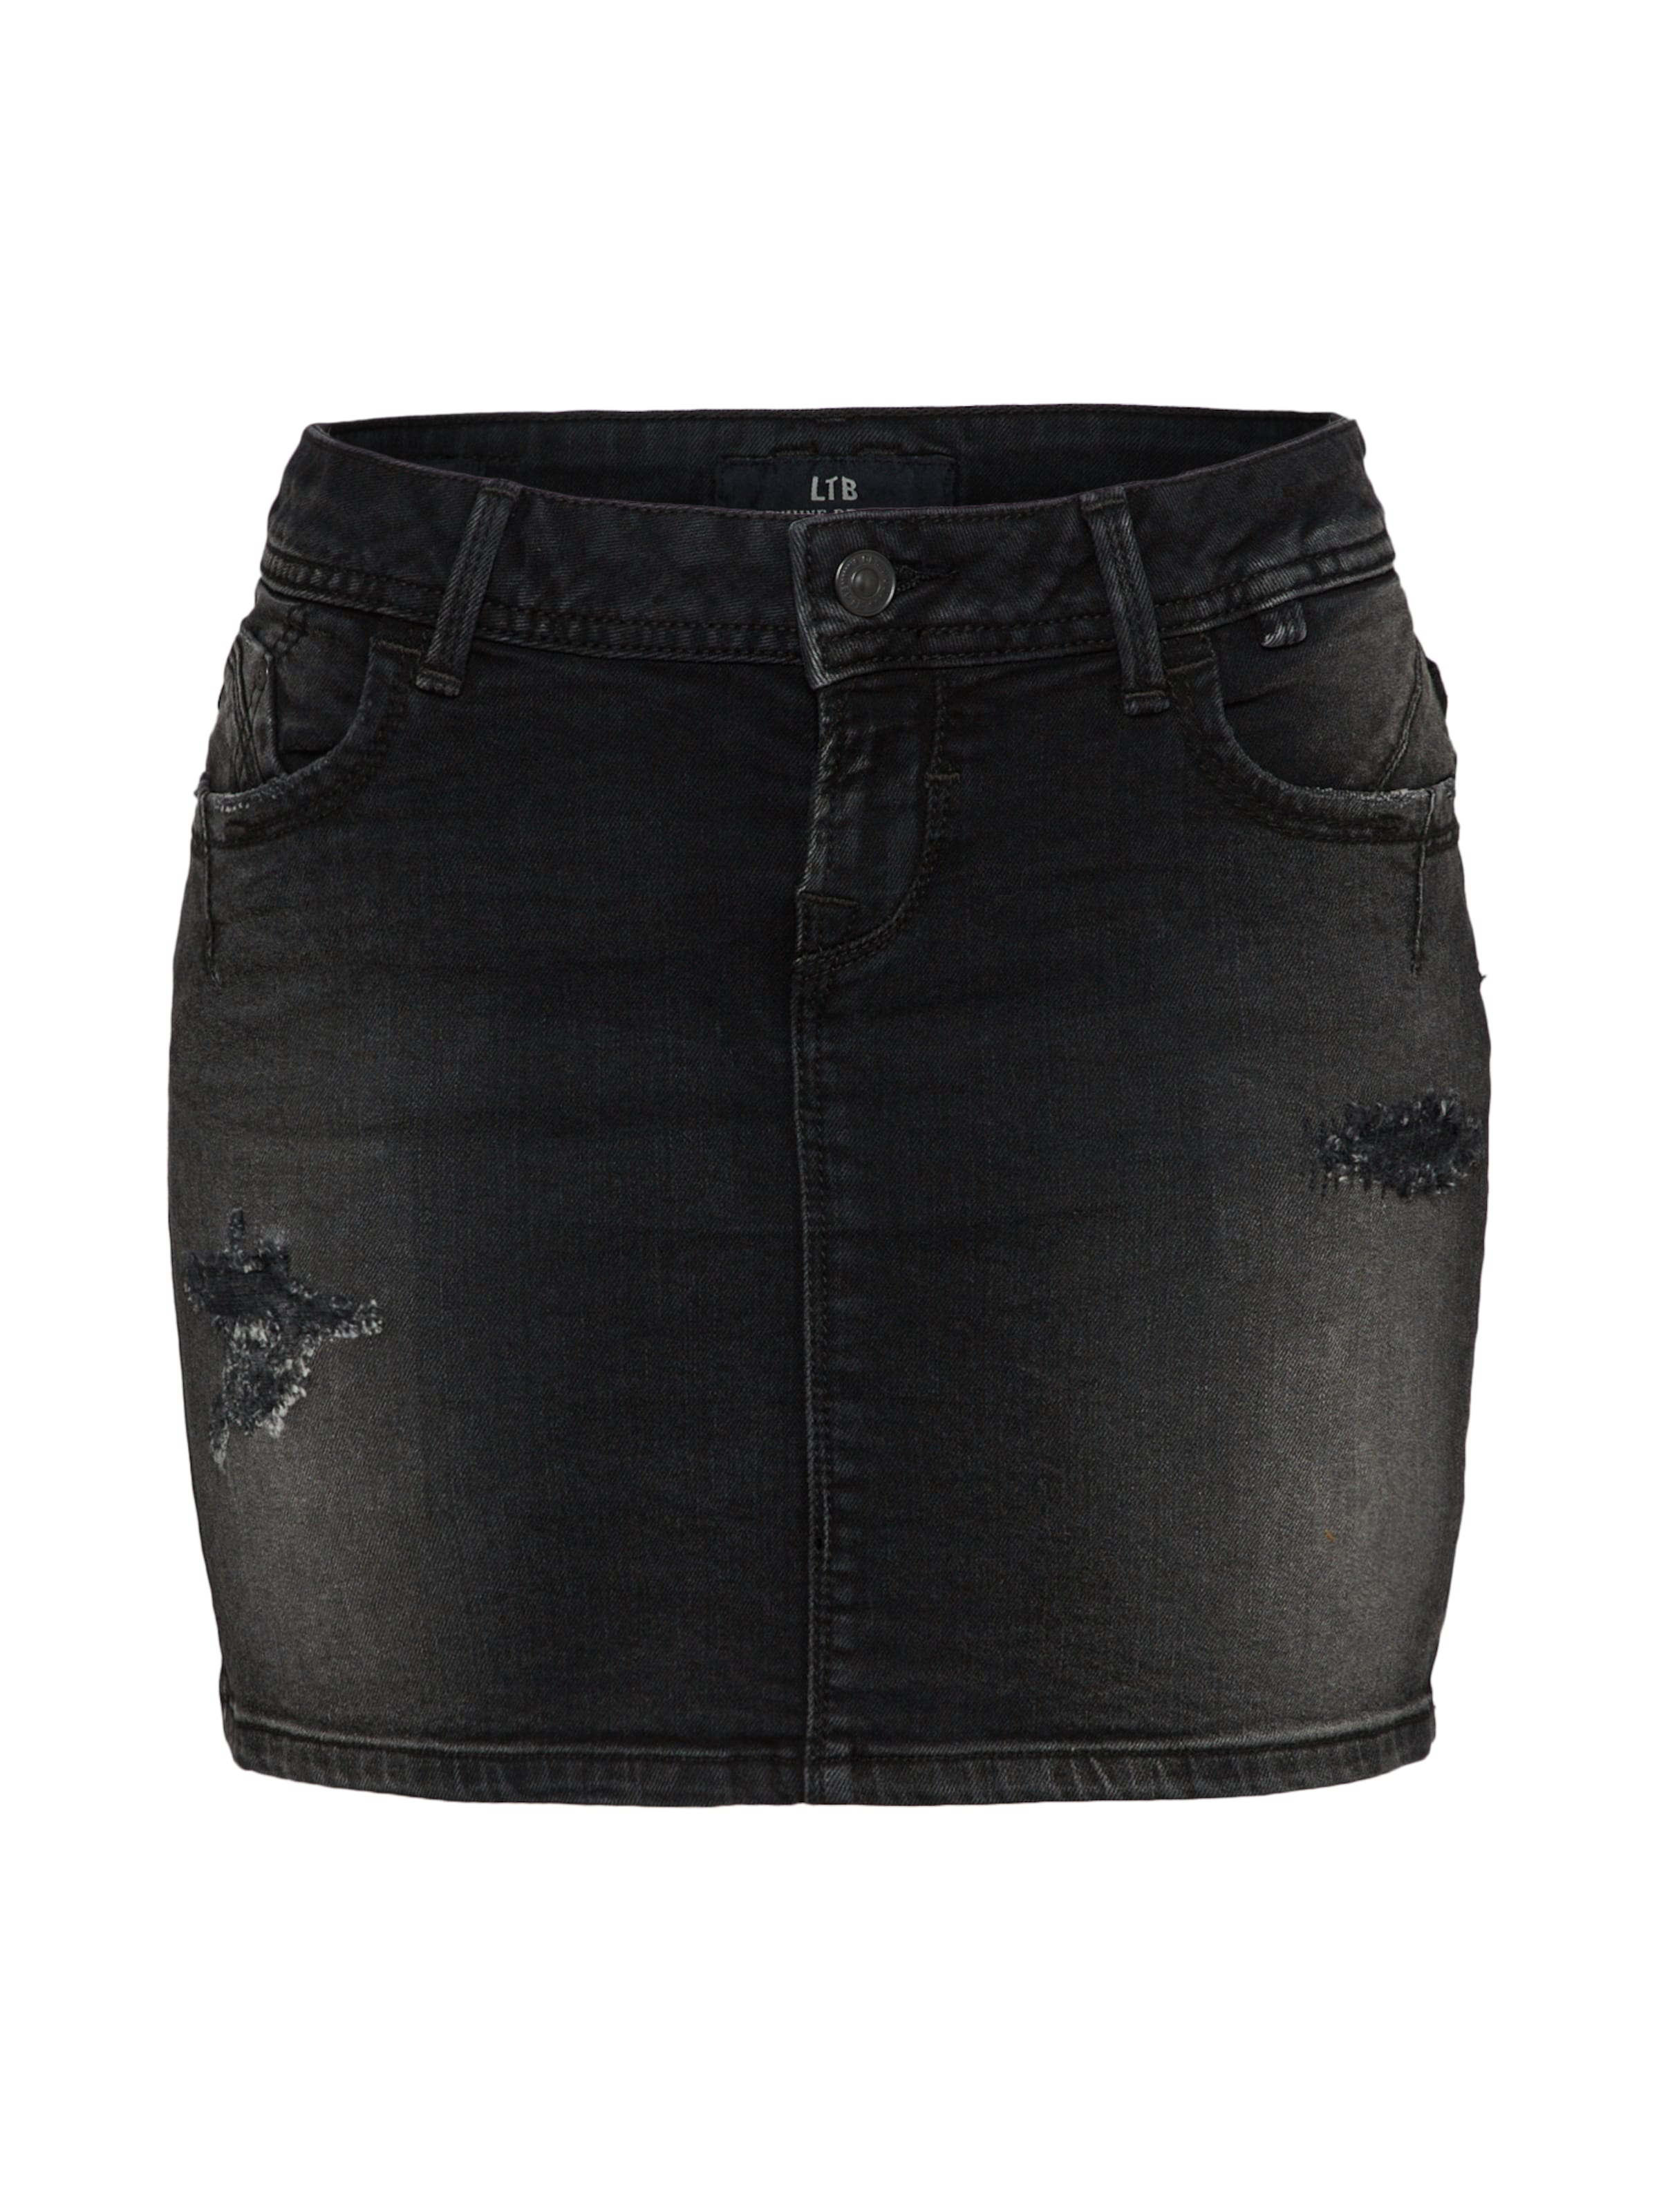 'andrea' 'andrea' Ltb 'andrea' Schwarz Ltb In Jeansmini Schwarz Jeansmini Jeansmini In Ltb R4A5j3L